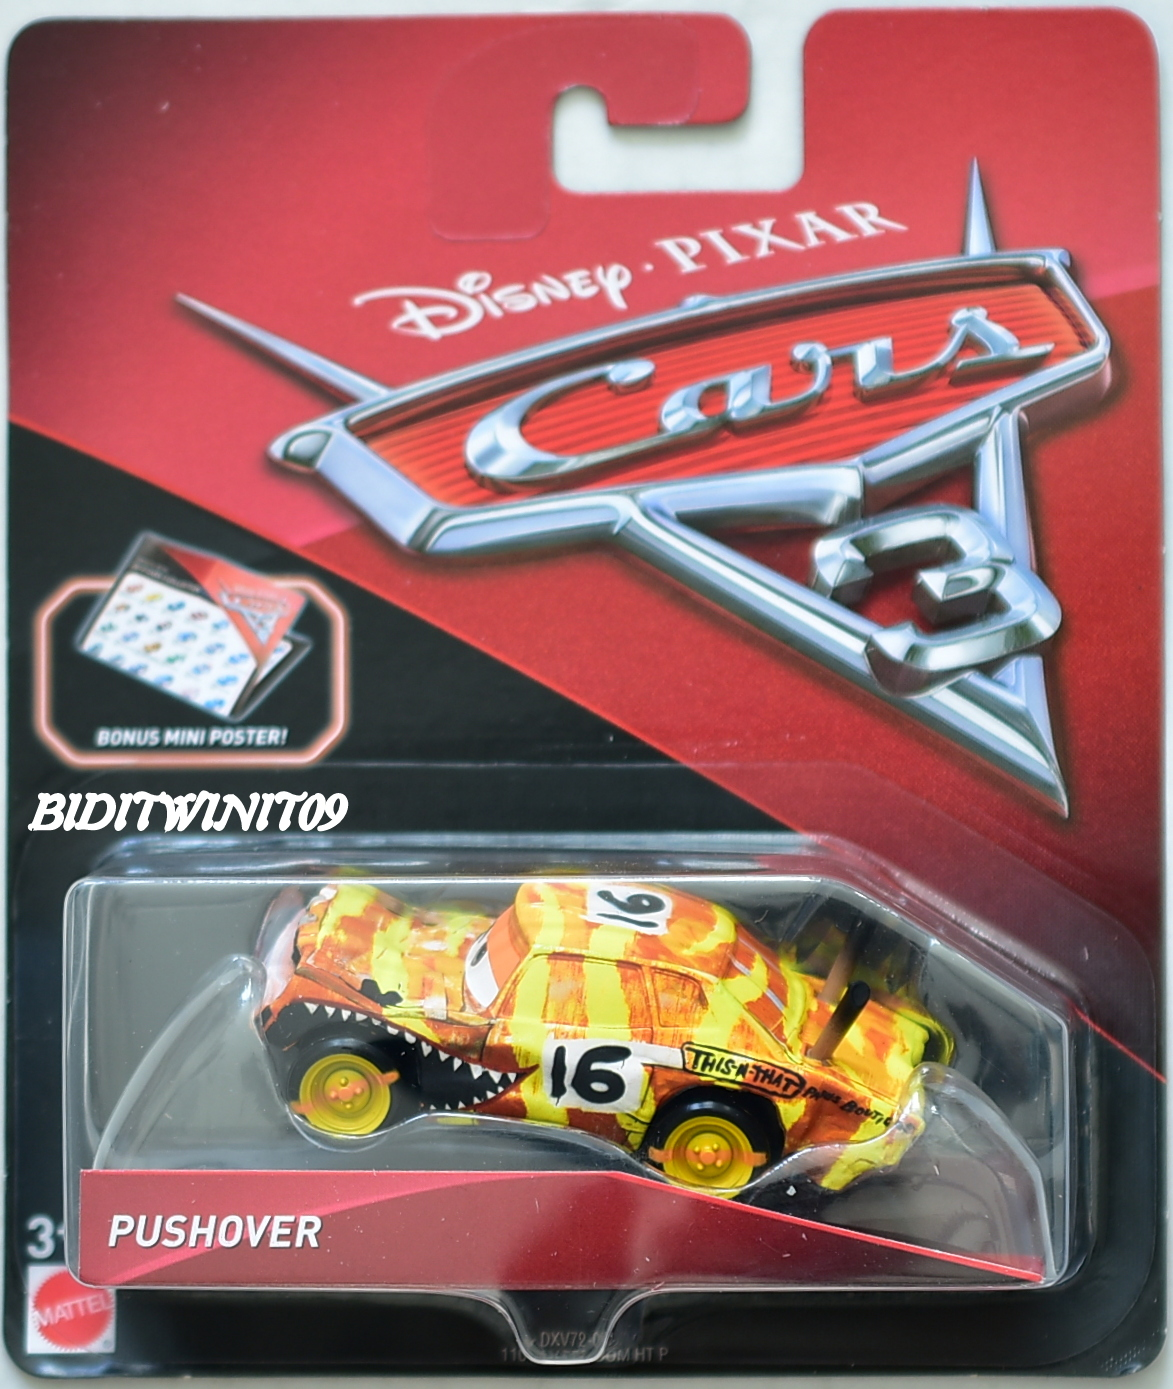 DISNEY PIXAR CARS 3 BONUS MINI POSTER PUSHOVER